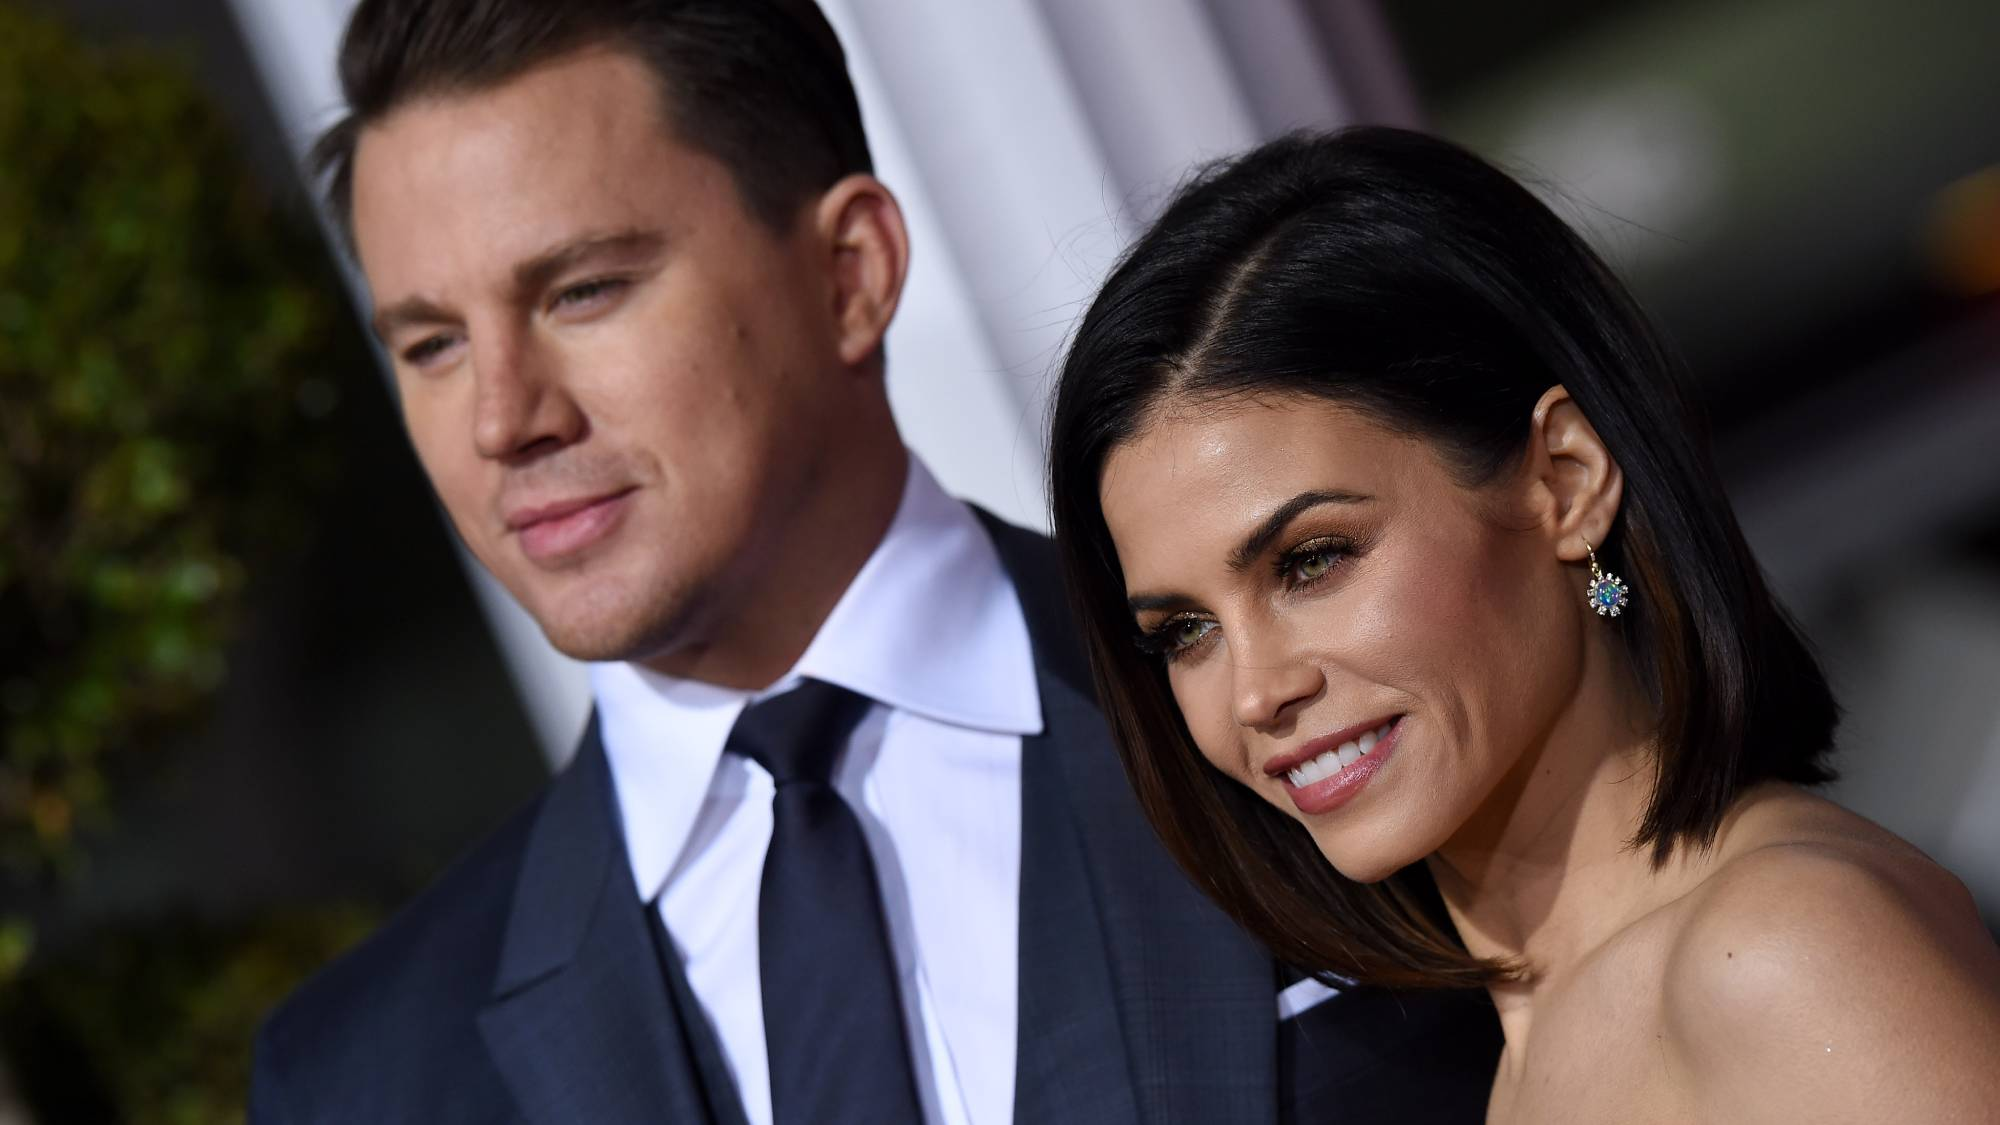 Jenna Dewan talks honestly about why she split from Channing Tatum